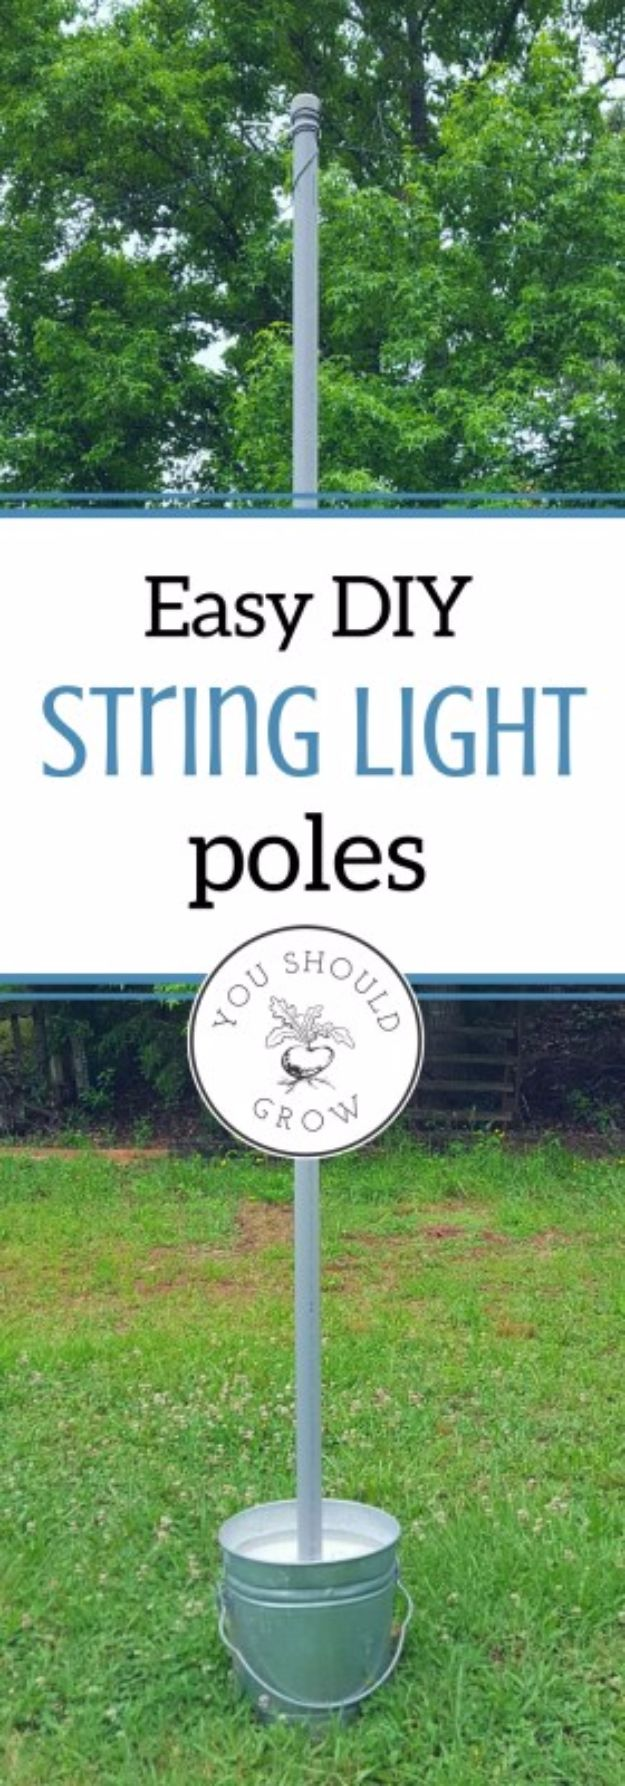 DIY Outdoor Lighting Ideas - Mobile String Light Poles Easy DIY - Do It Yourself Lighting Ideas for the Backyard, Patio, Porch and Pool - Lights, Chandeliers, Lamps and String Lights for Your Outdoors - Dining Table and Chair Lighting, Overhead, Sconces and Weatherproof Projects #diy #lighting